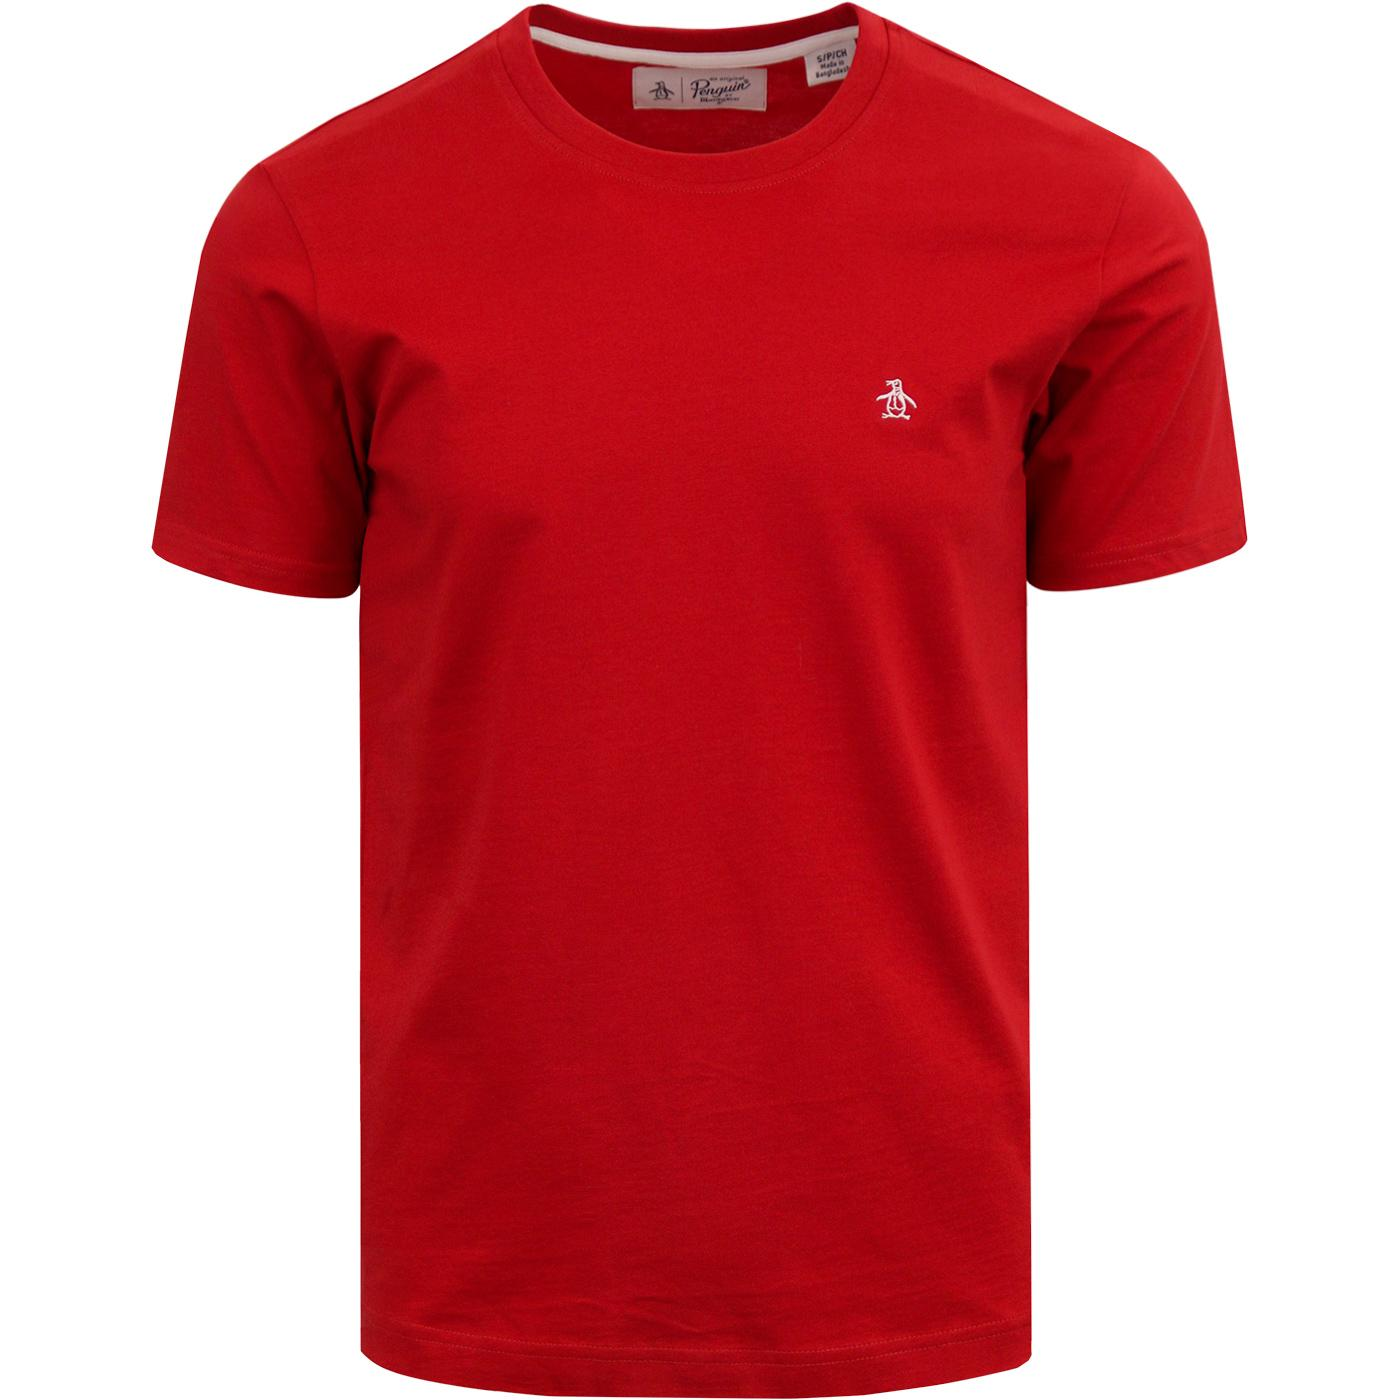 ORIGINAL PENGUIN Basic Pin Point Logo Crew Tee SS